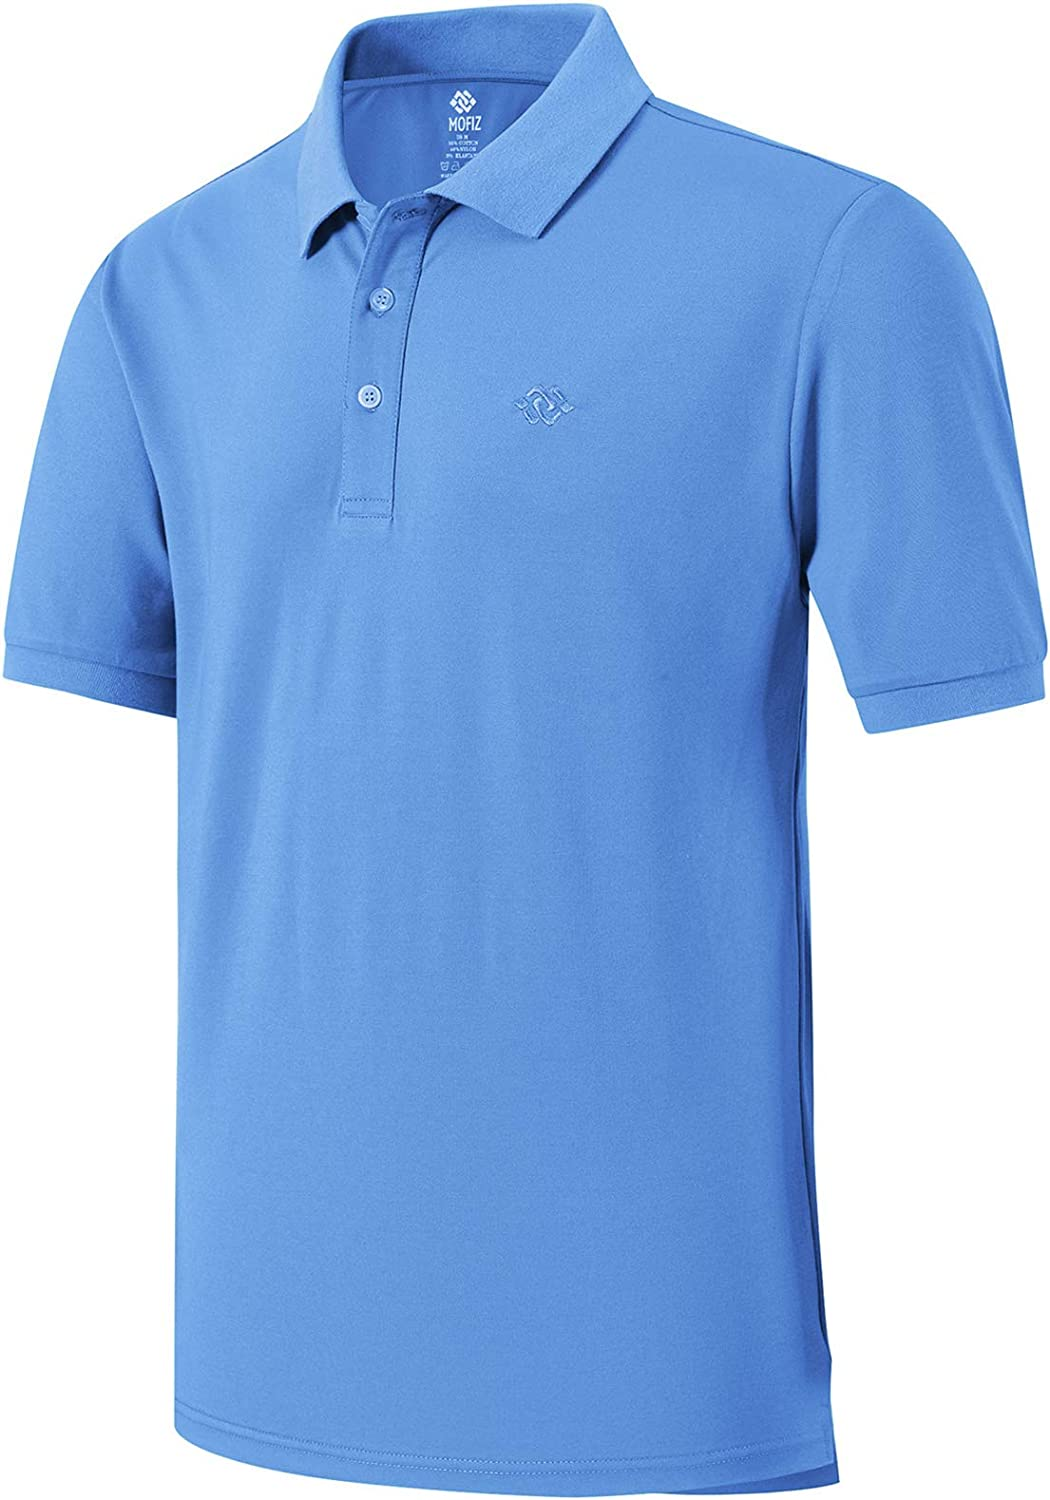 MoFiz Casual Golf Shirts Max 74% OFF for Men Dry Polo Shirt Men's Fit with New sales